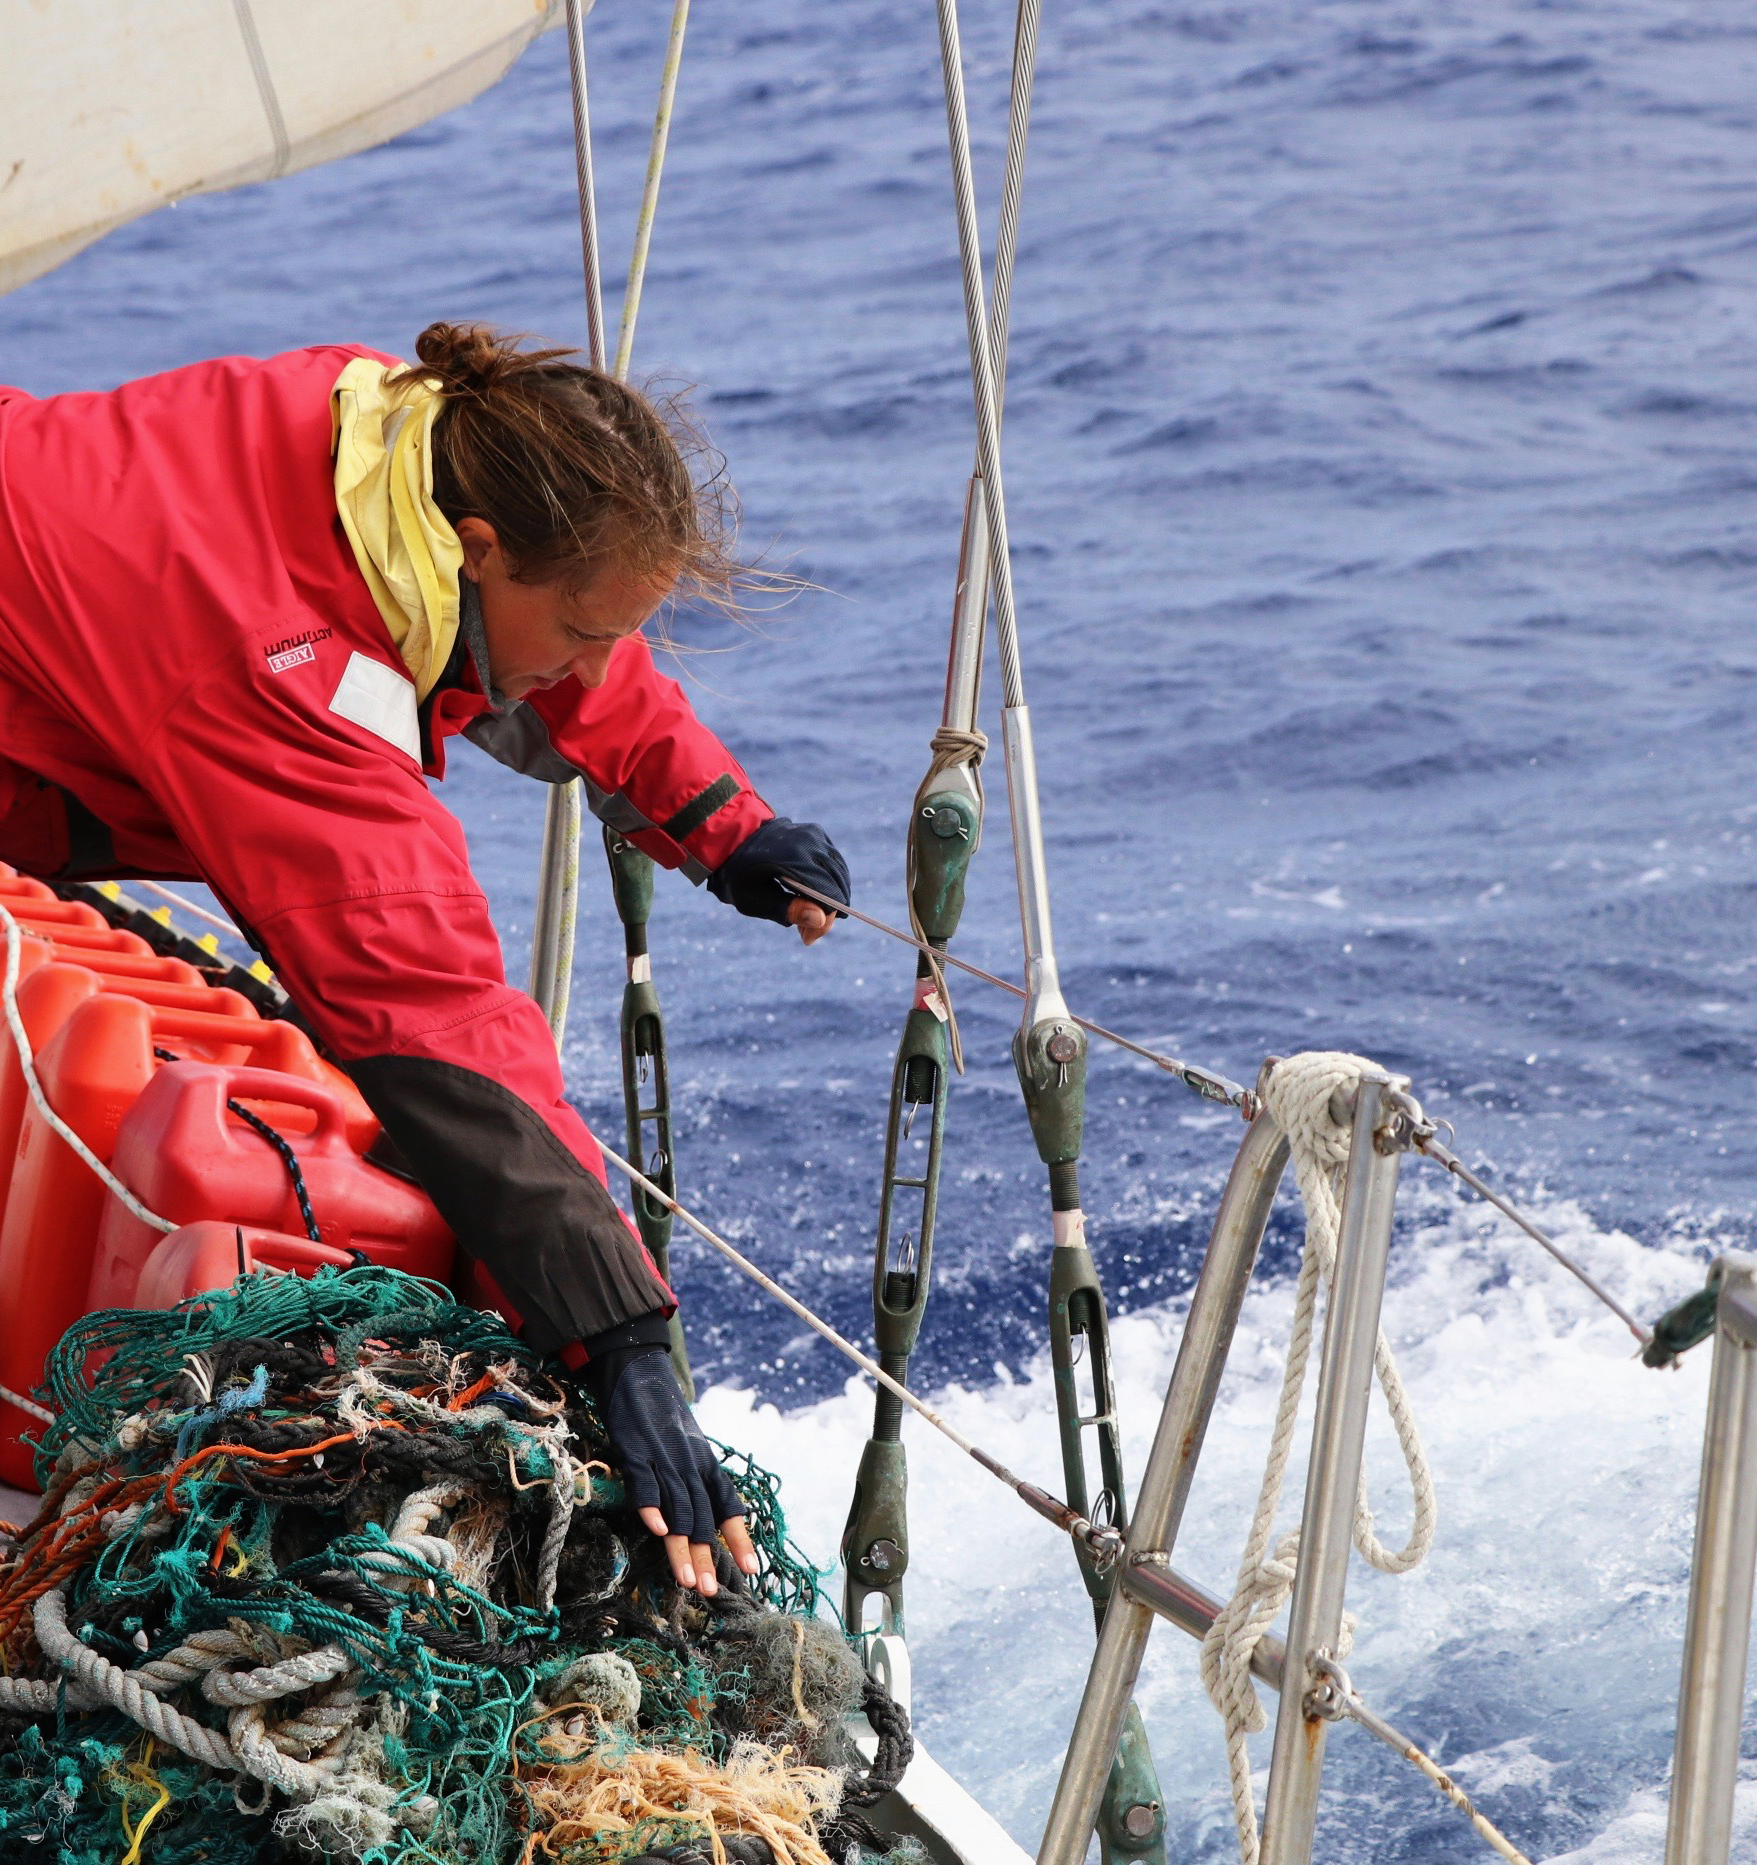 Photo: Scientist Malene Møhl secures ghost net on deck of S/Y Christianshavn in the North Pacific Gyre, 2016. ©Erica Cirino